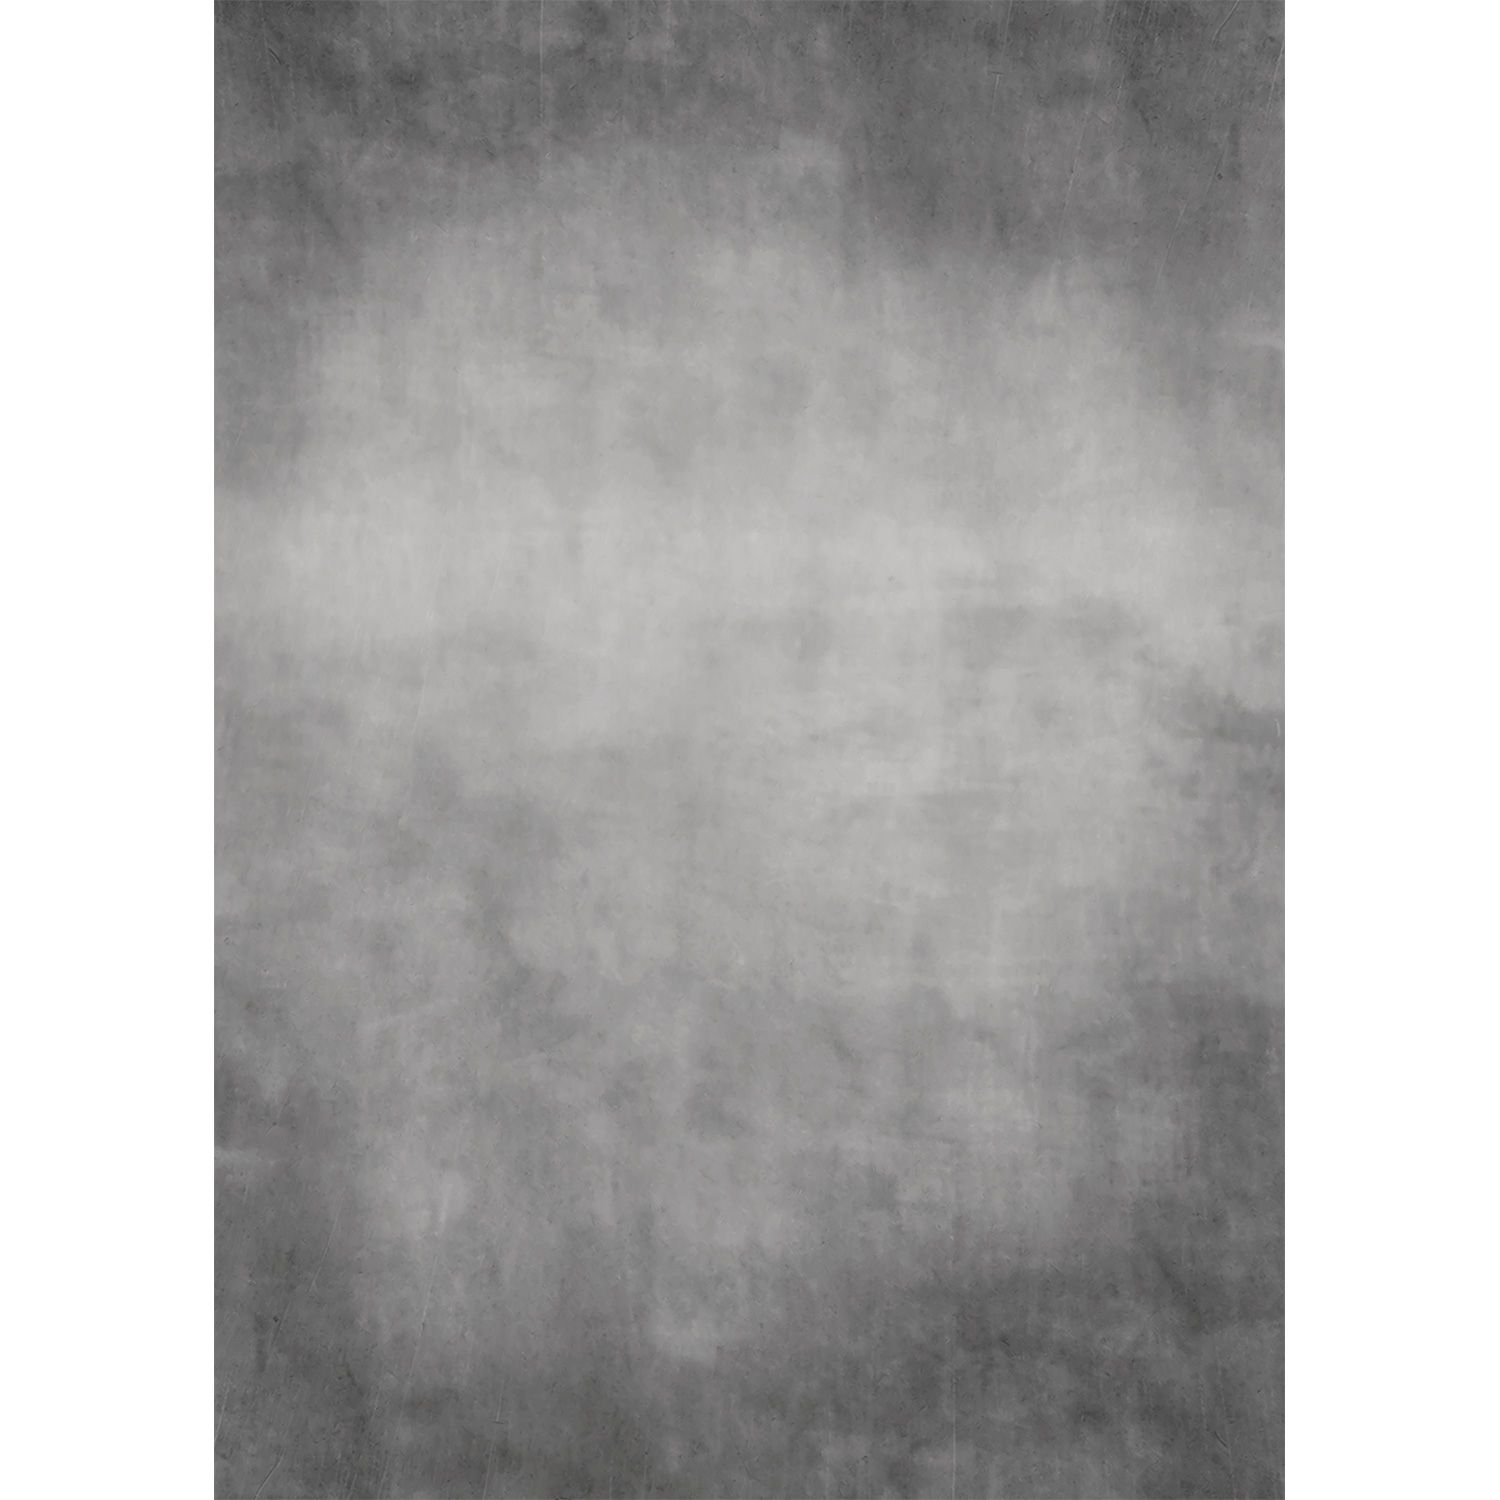 X-Drop Canvas Backdrop - Vintage Gray by Glyn Dewis (5' x 7')